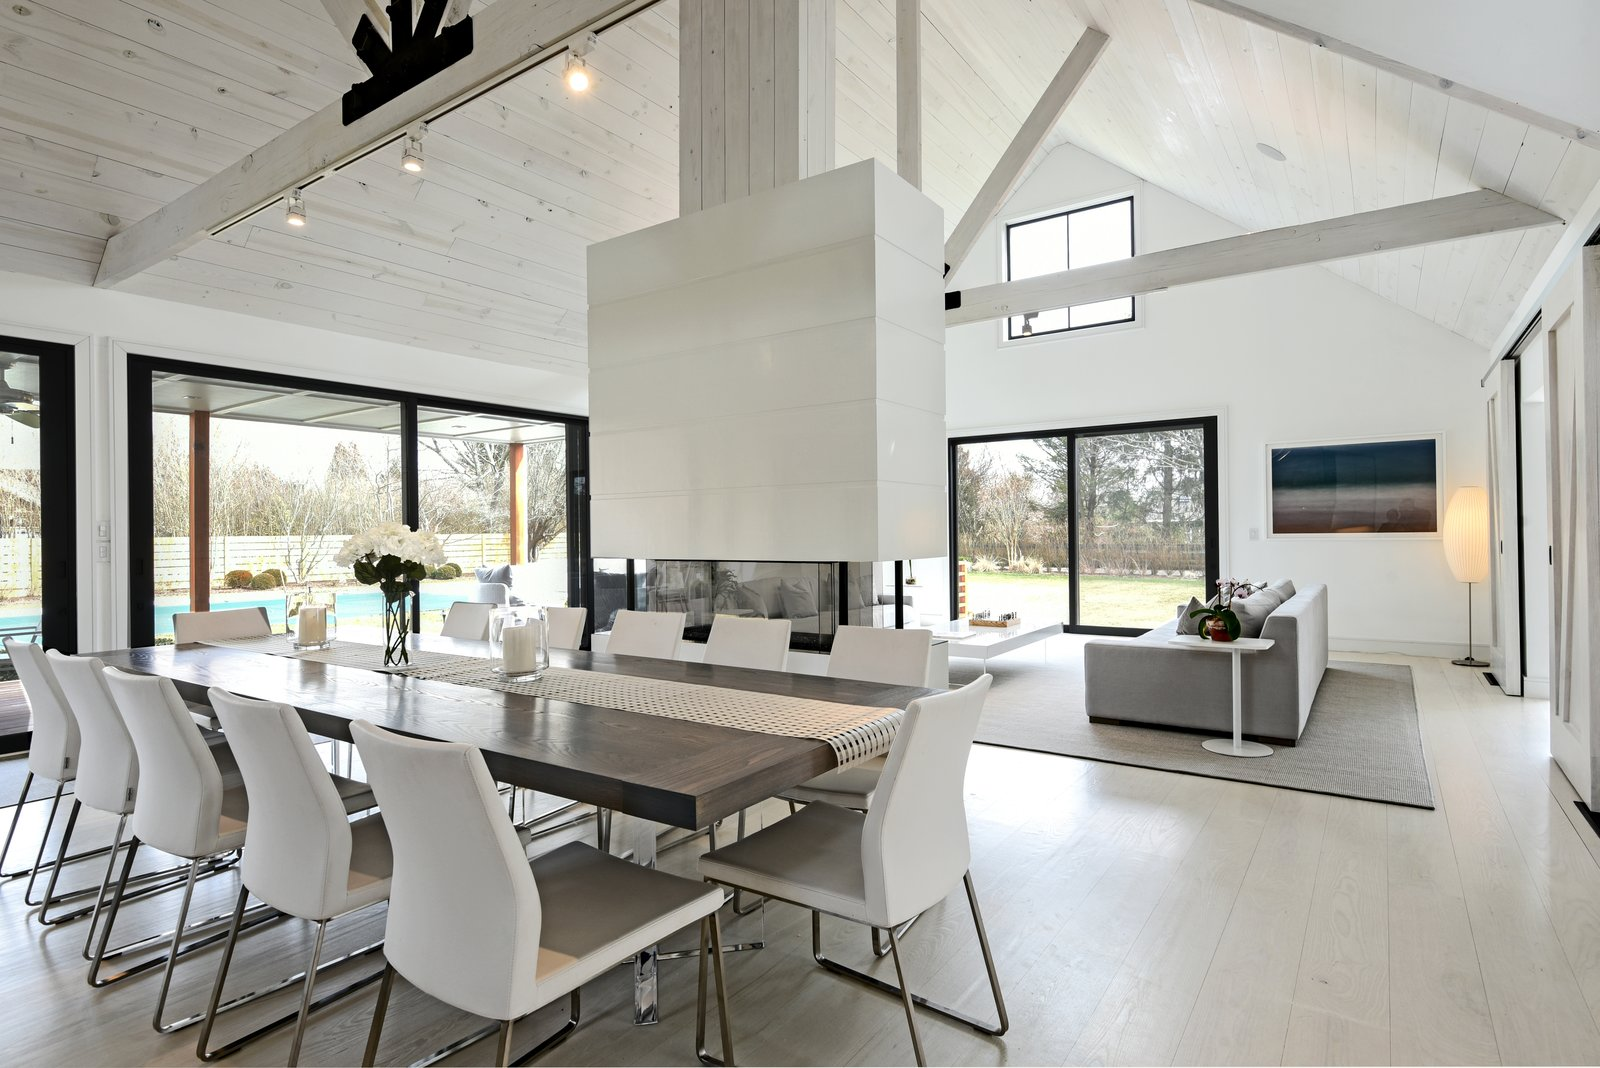 The Modern Barn 174 Conversion At Water Mill Modern Home In